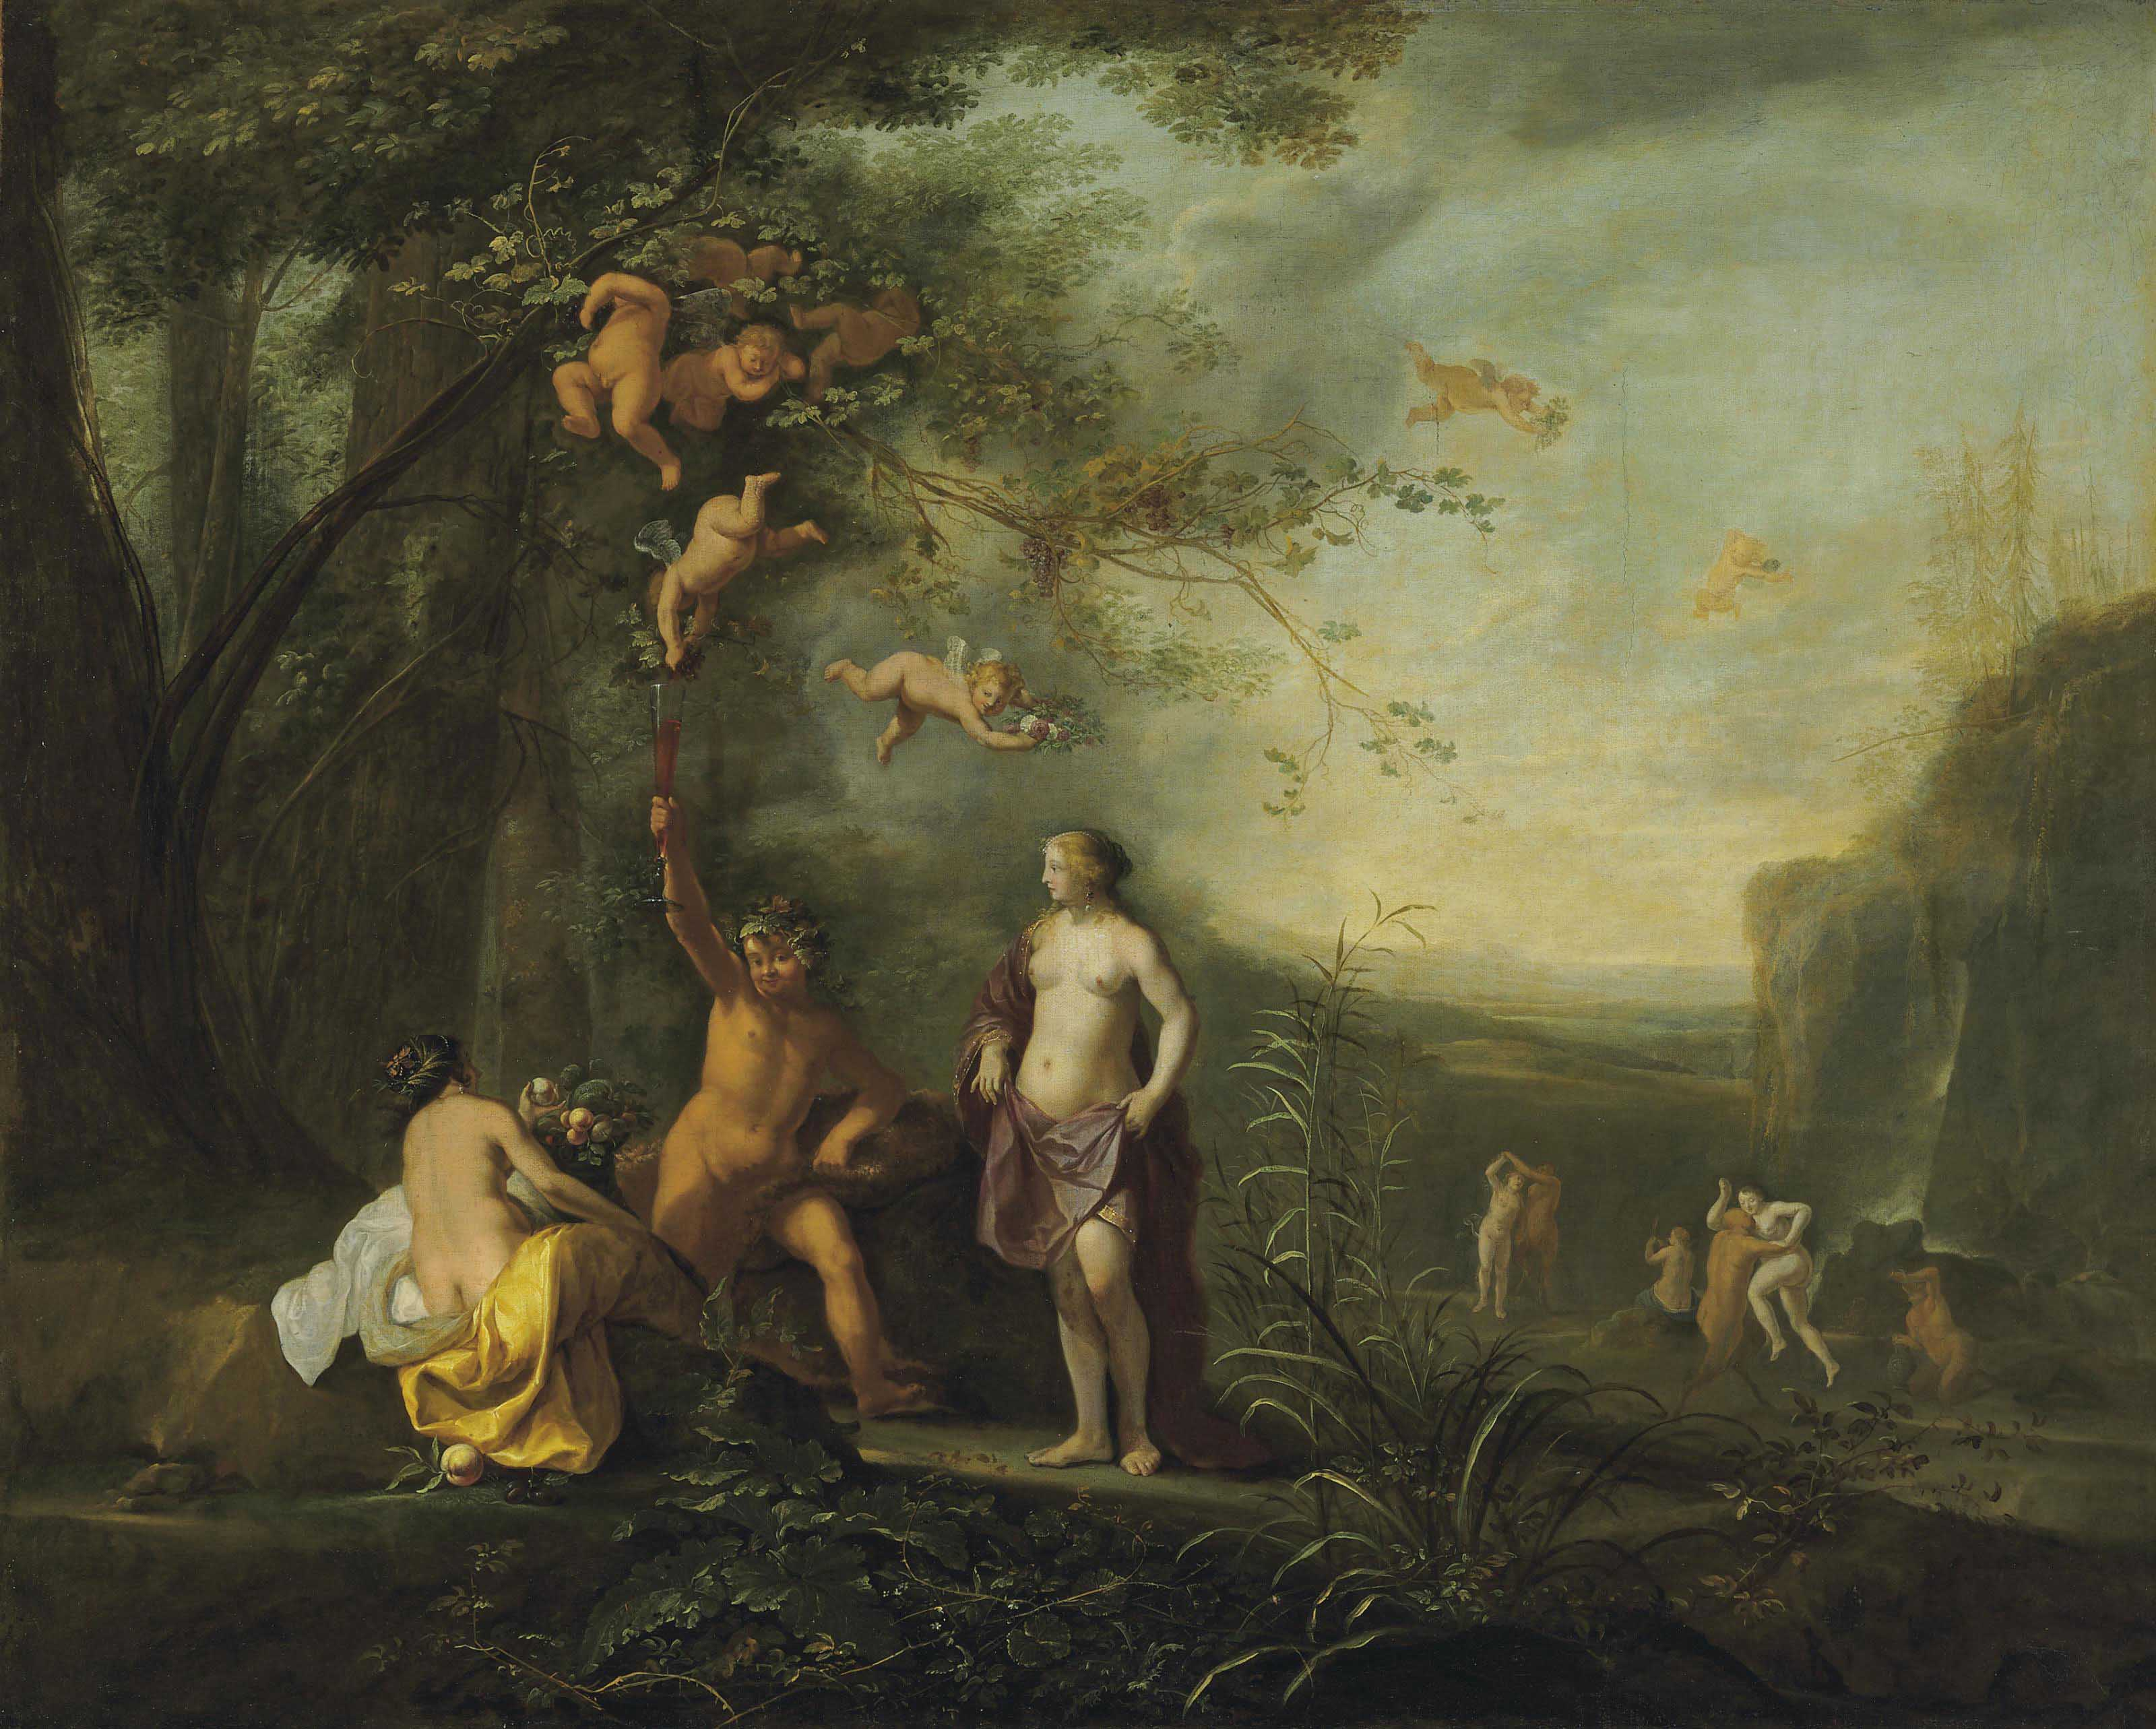 Bacchus, Venus and Ceres under a grapevine in a pastoral landscape with putti, nymphs and satyrs